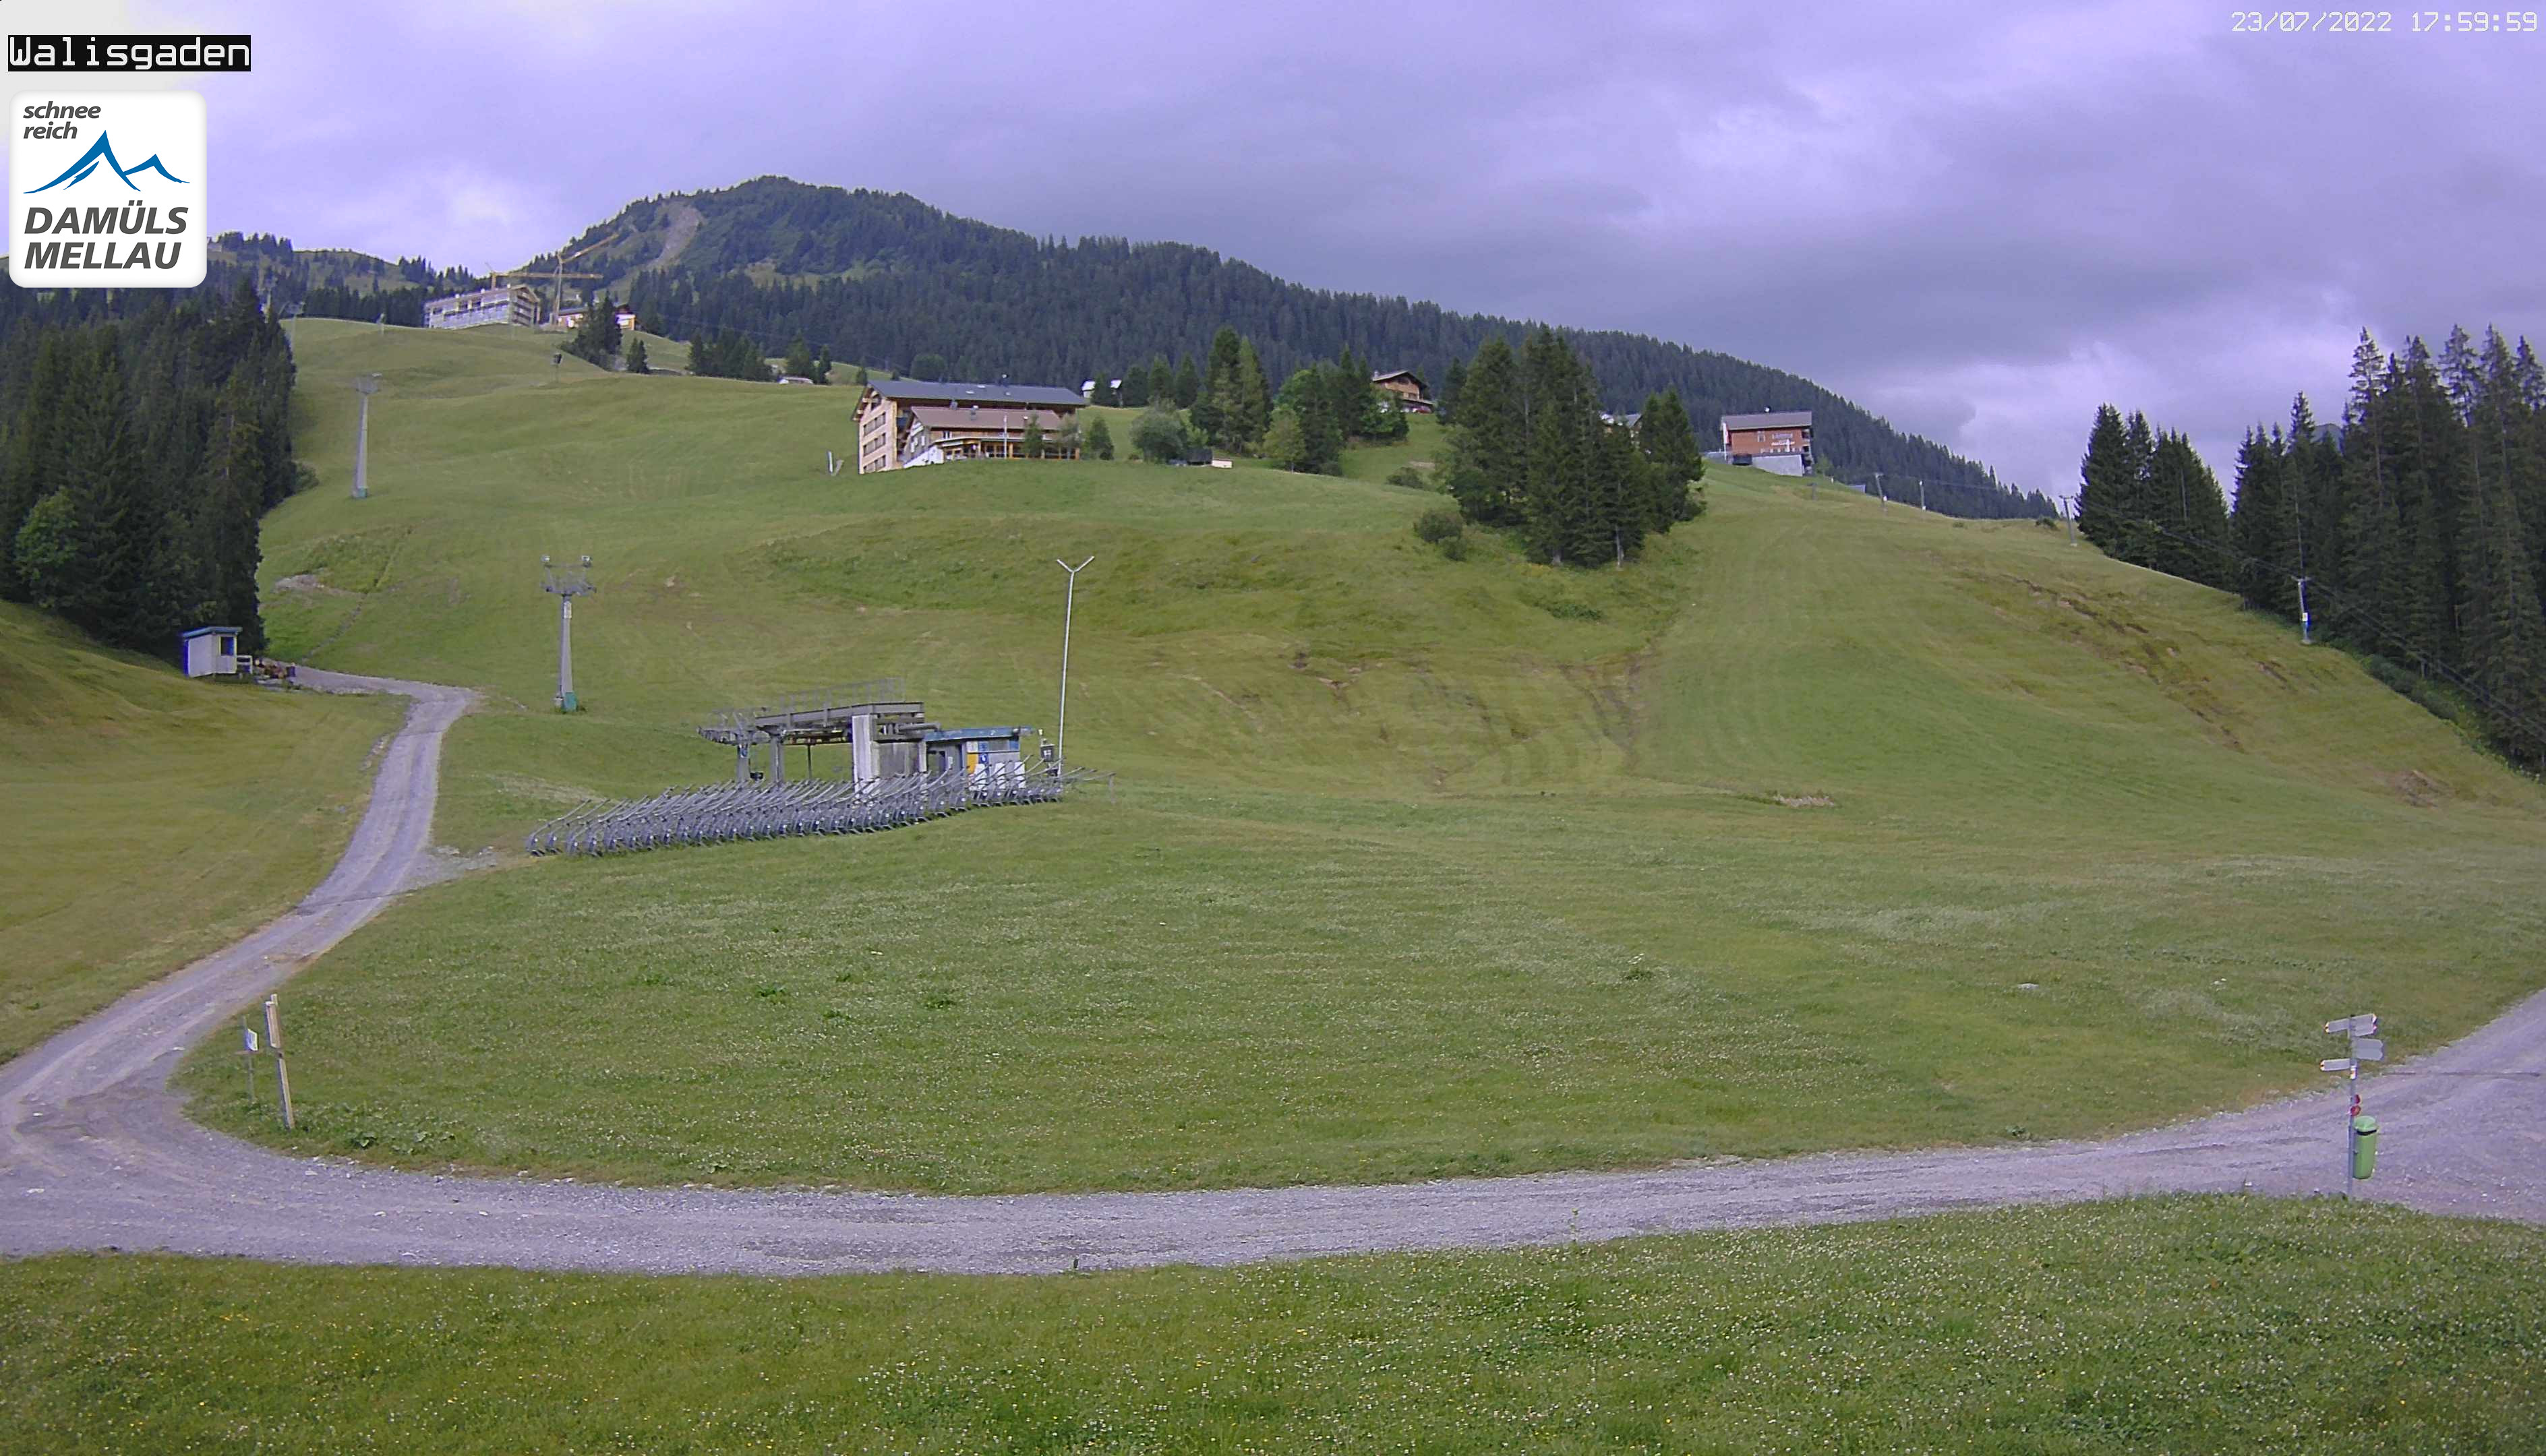 Damuels webcam - Base Station Sunnegg 1.440 m - View to Walisgaden